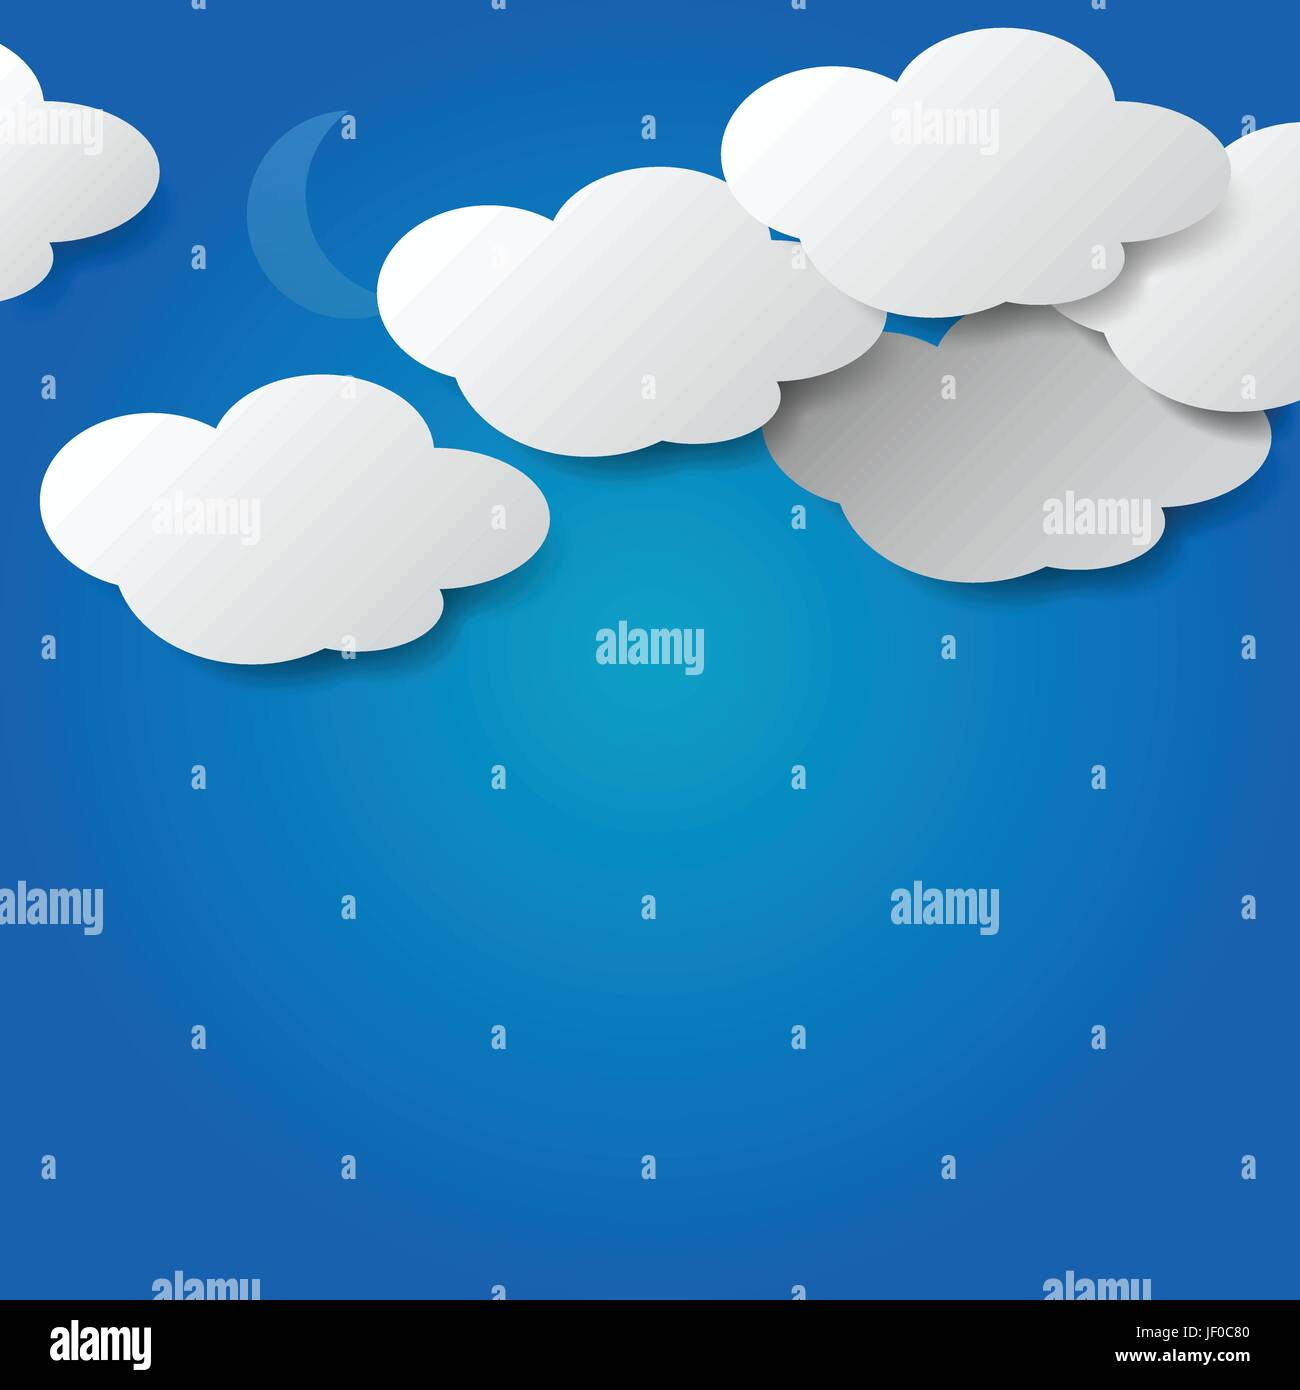 cloud, summer, summerly, square, bubble, date, dating, get to know, firmament, - Stock Vector